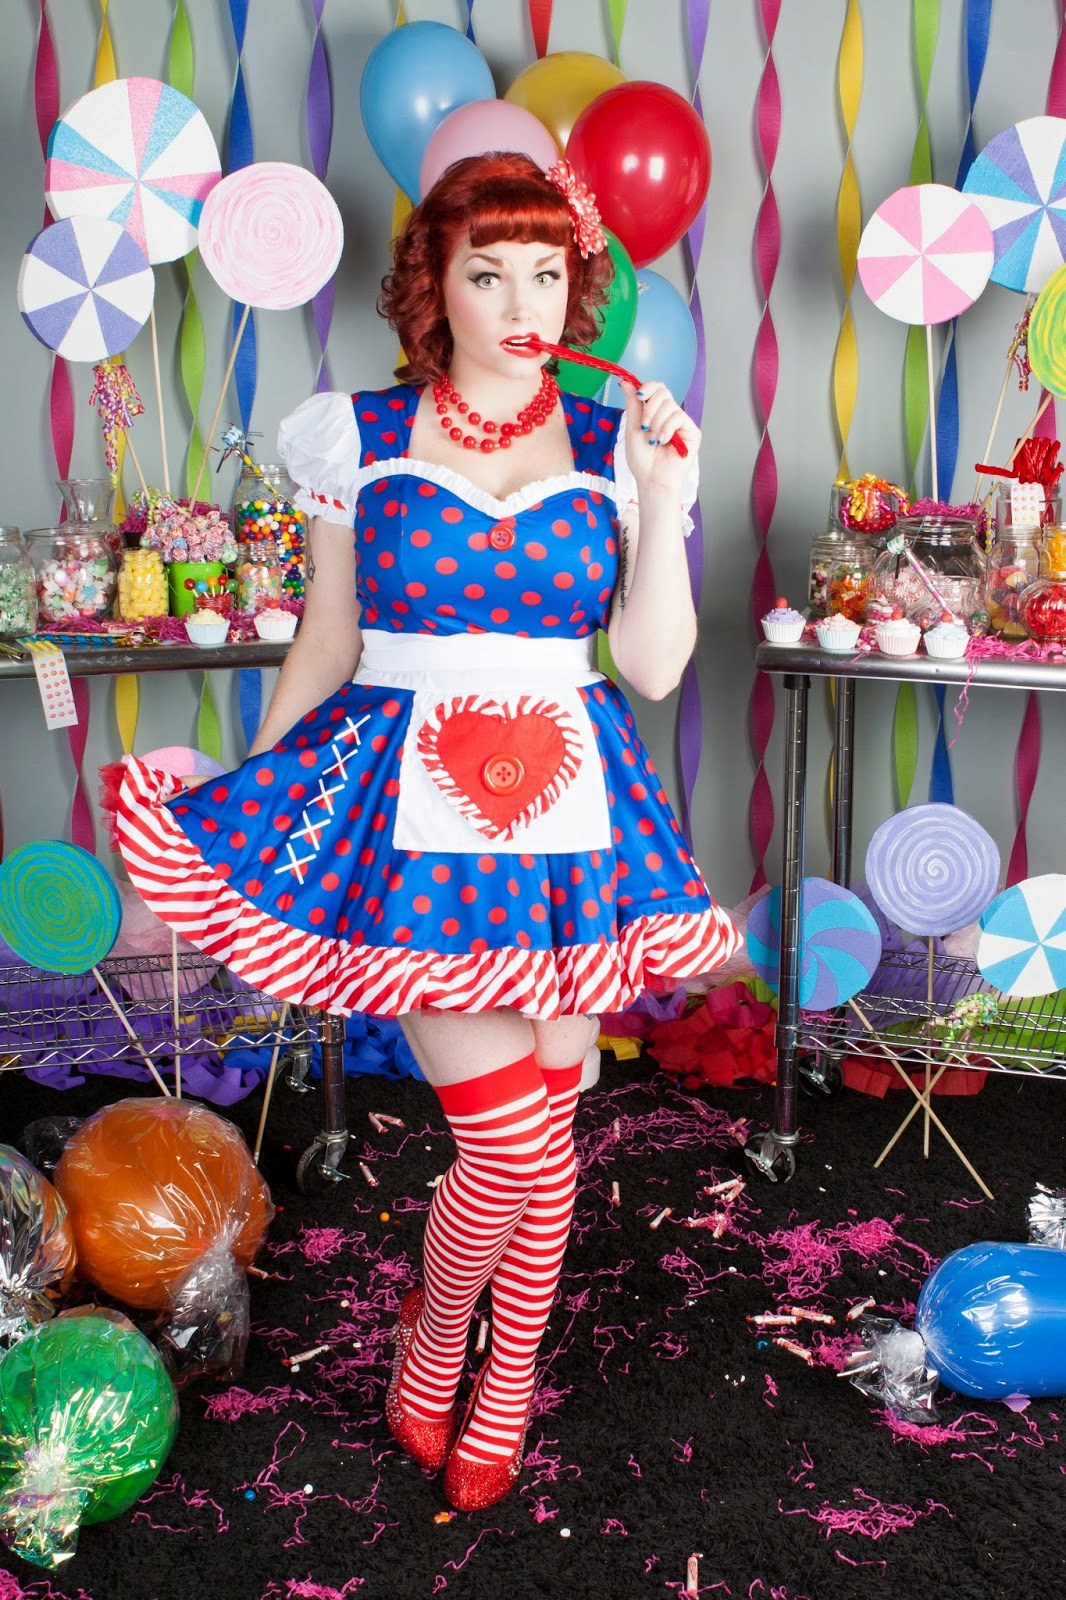 Candy S Colorado Cranker Blog Csm Tools For Cranking: Pinup By Liz: Candy Shop Pinup {Tulsa Pin Up Photographer}